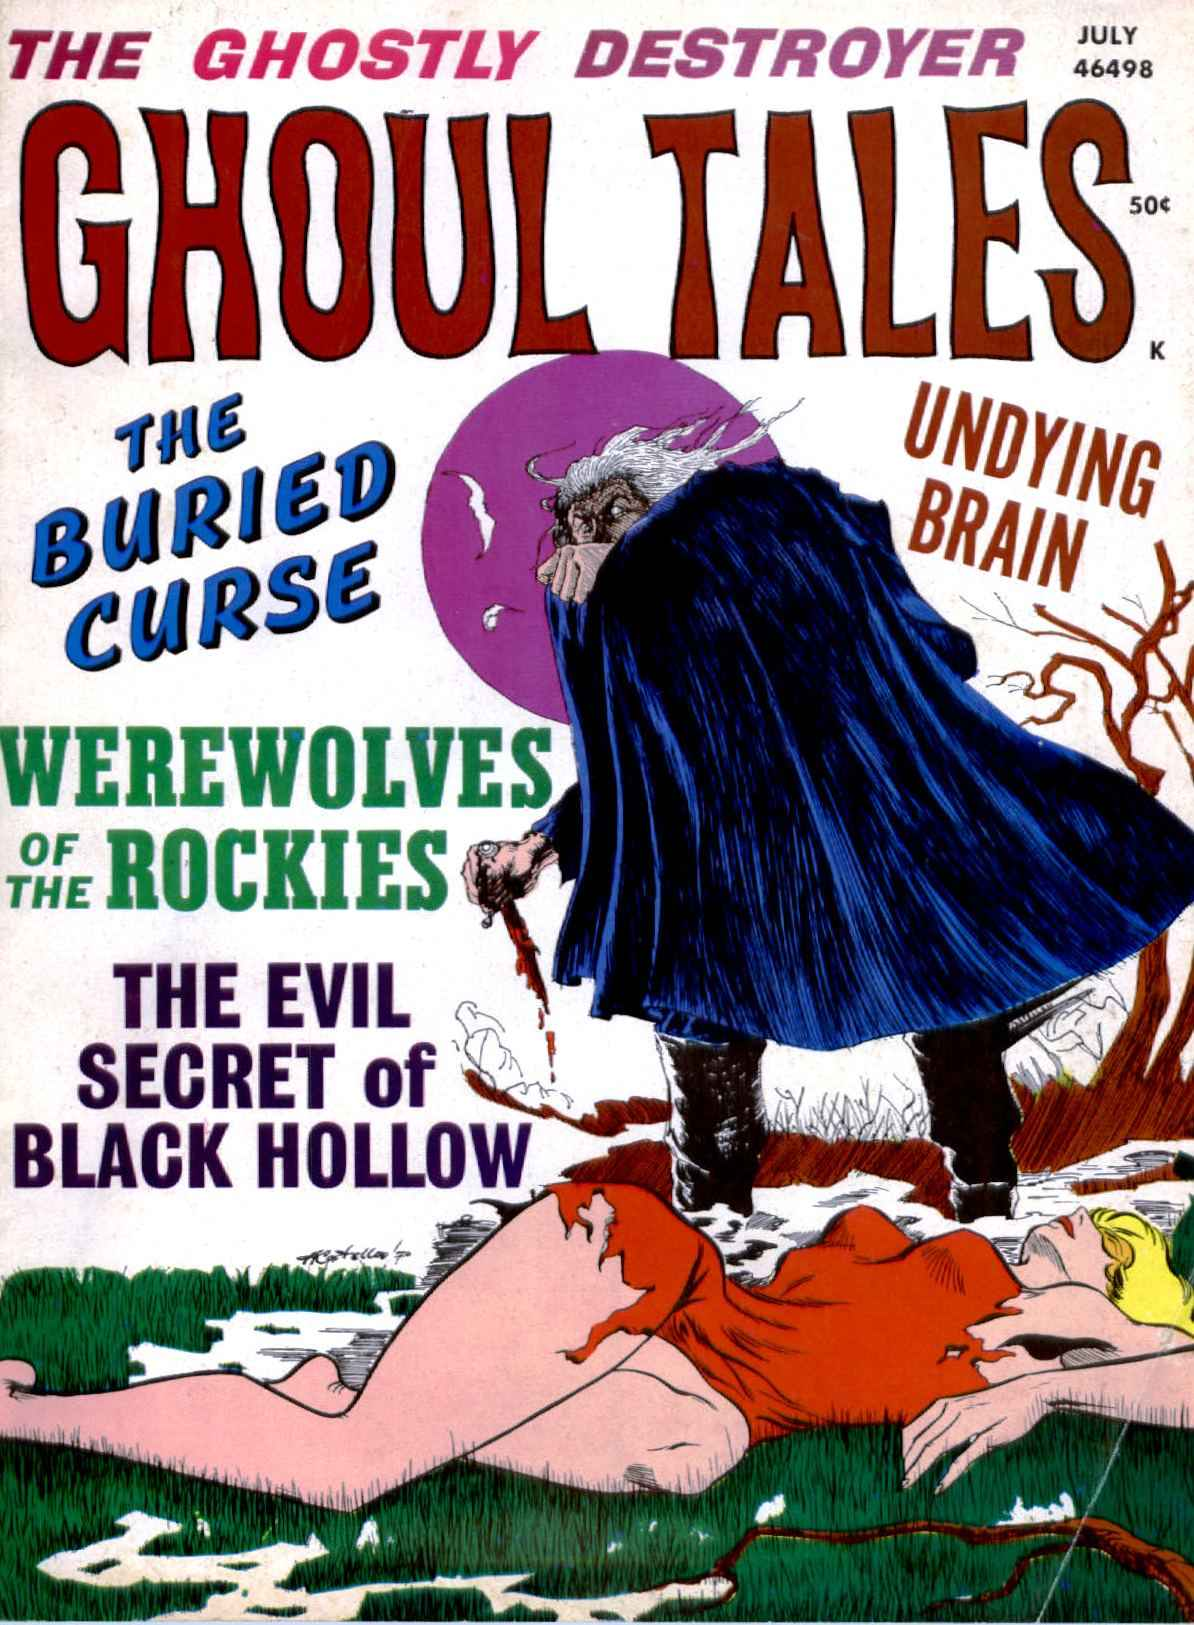 Ghoul Tales - 05, July 1971